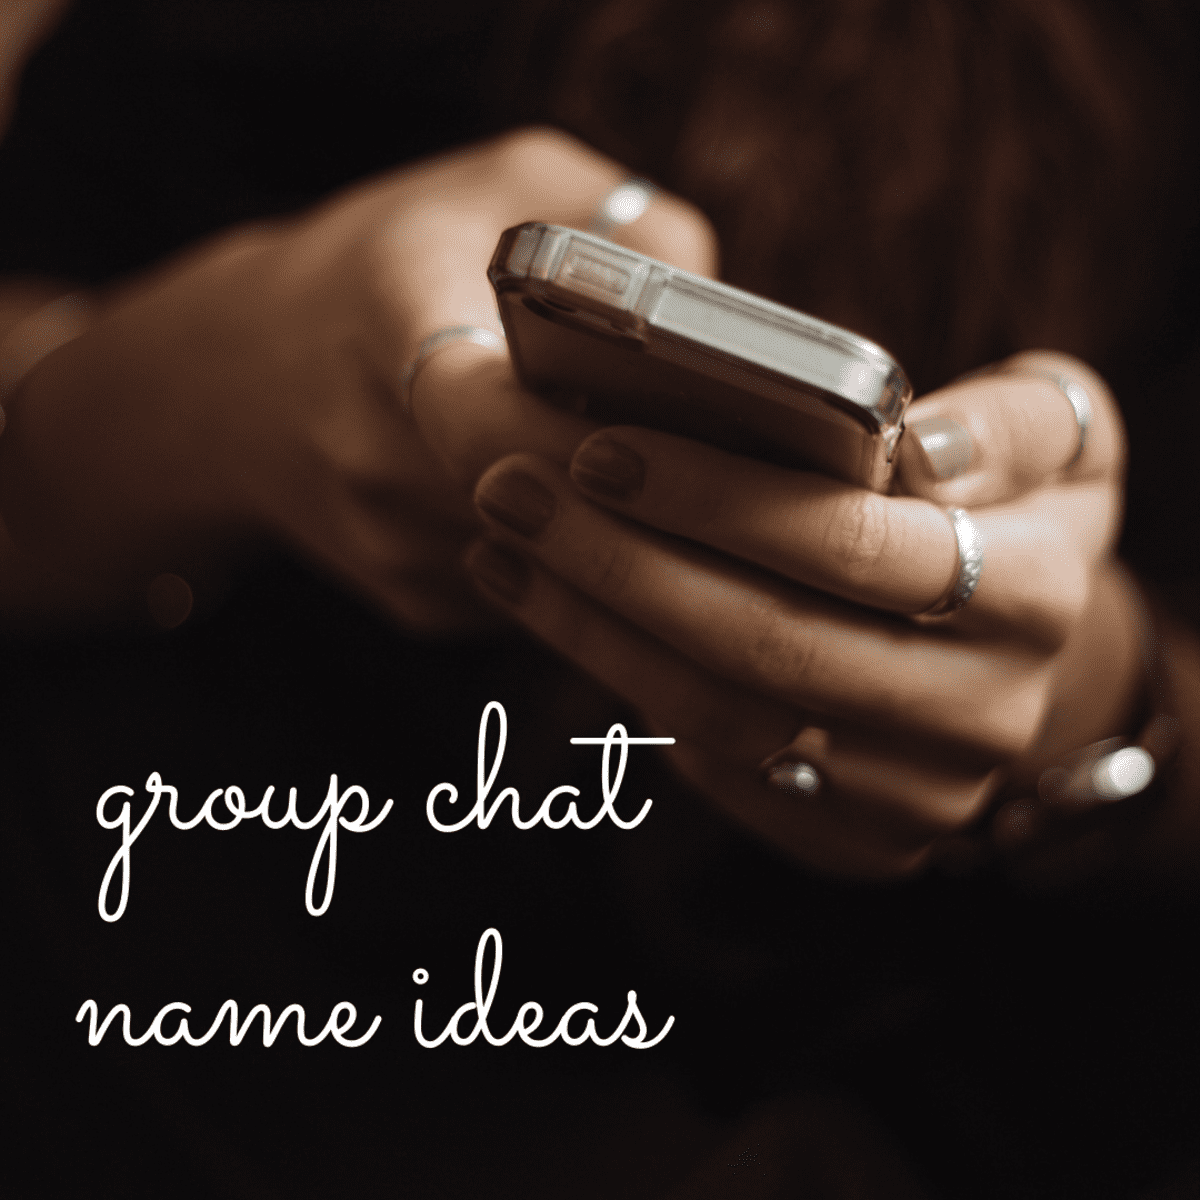 Group say a funny things chat to on 81 Funny